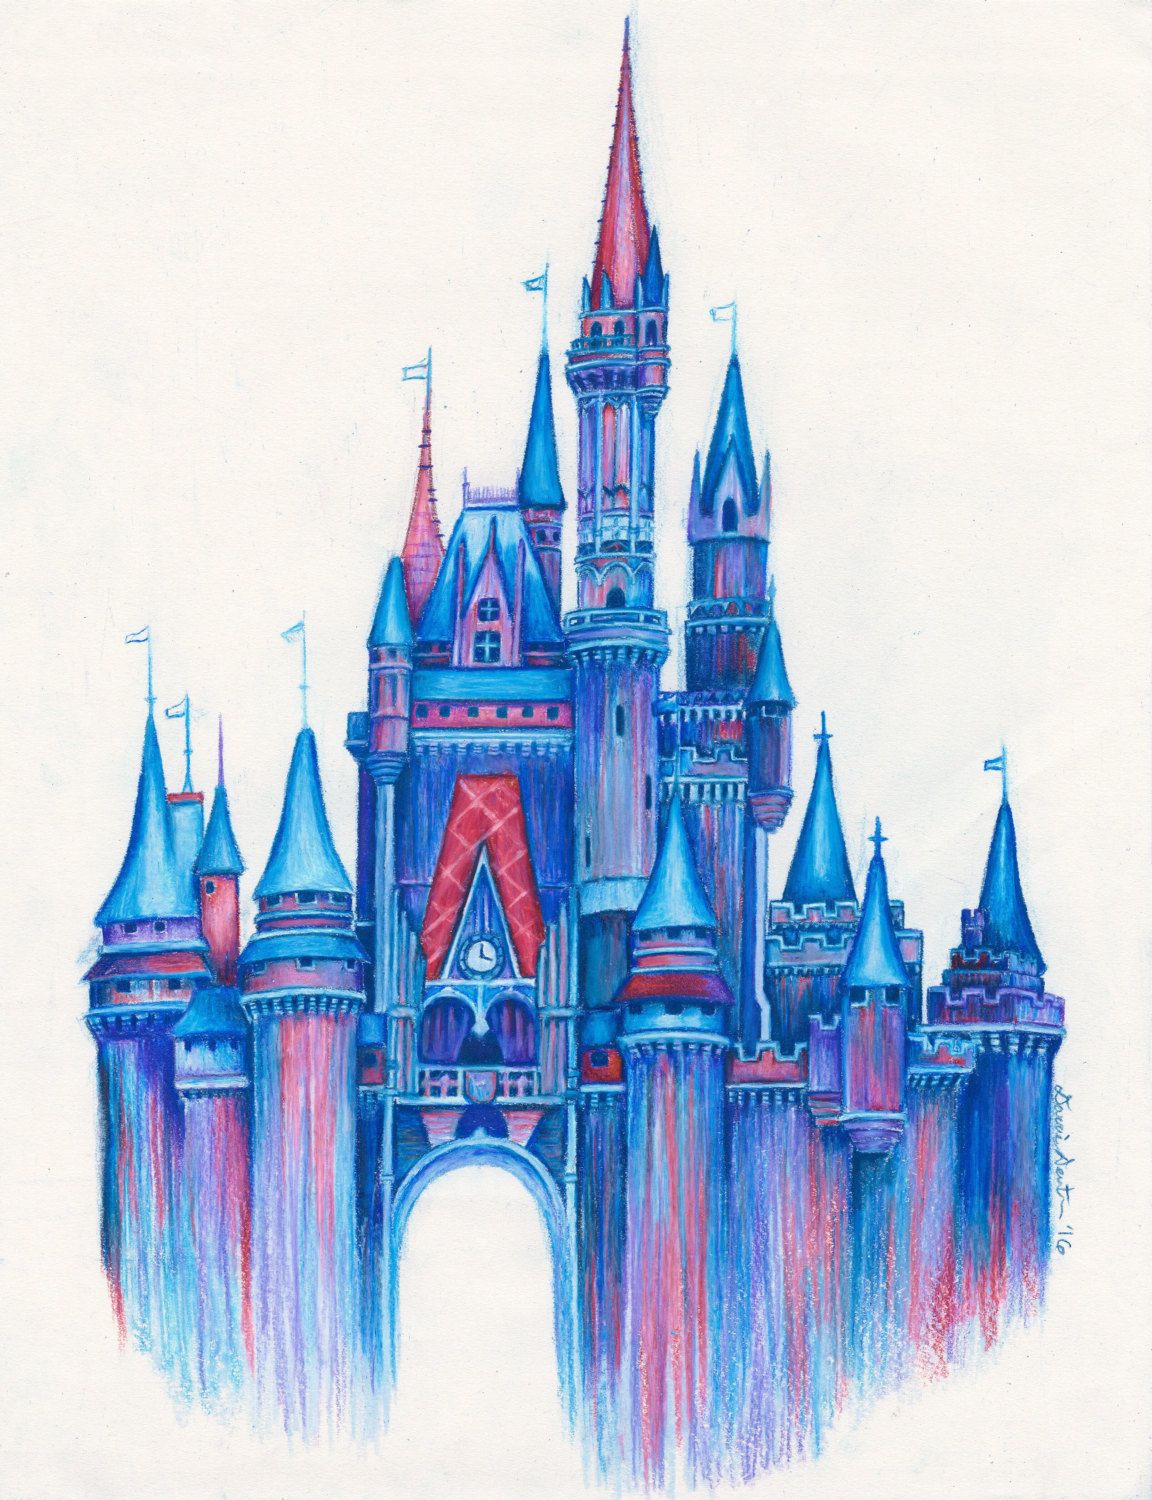 disney castle drawing at getdrawings com free for personal use